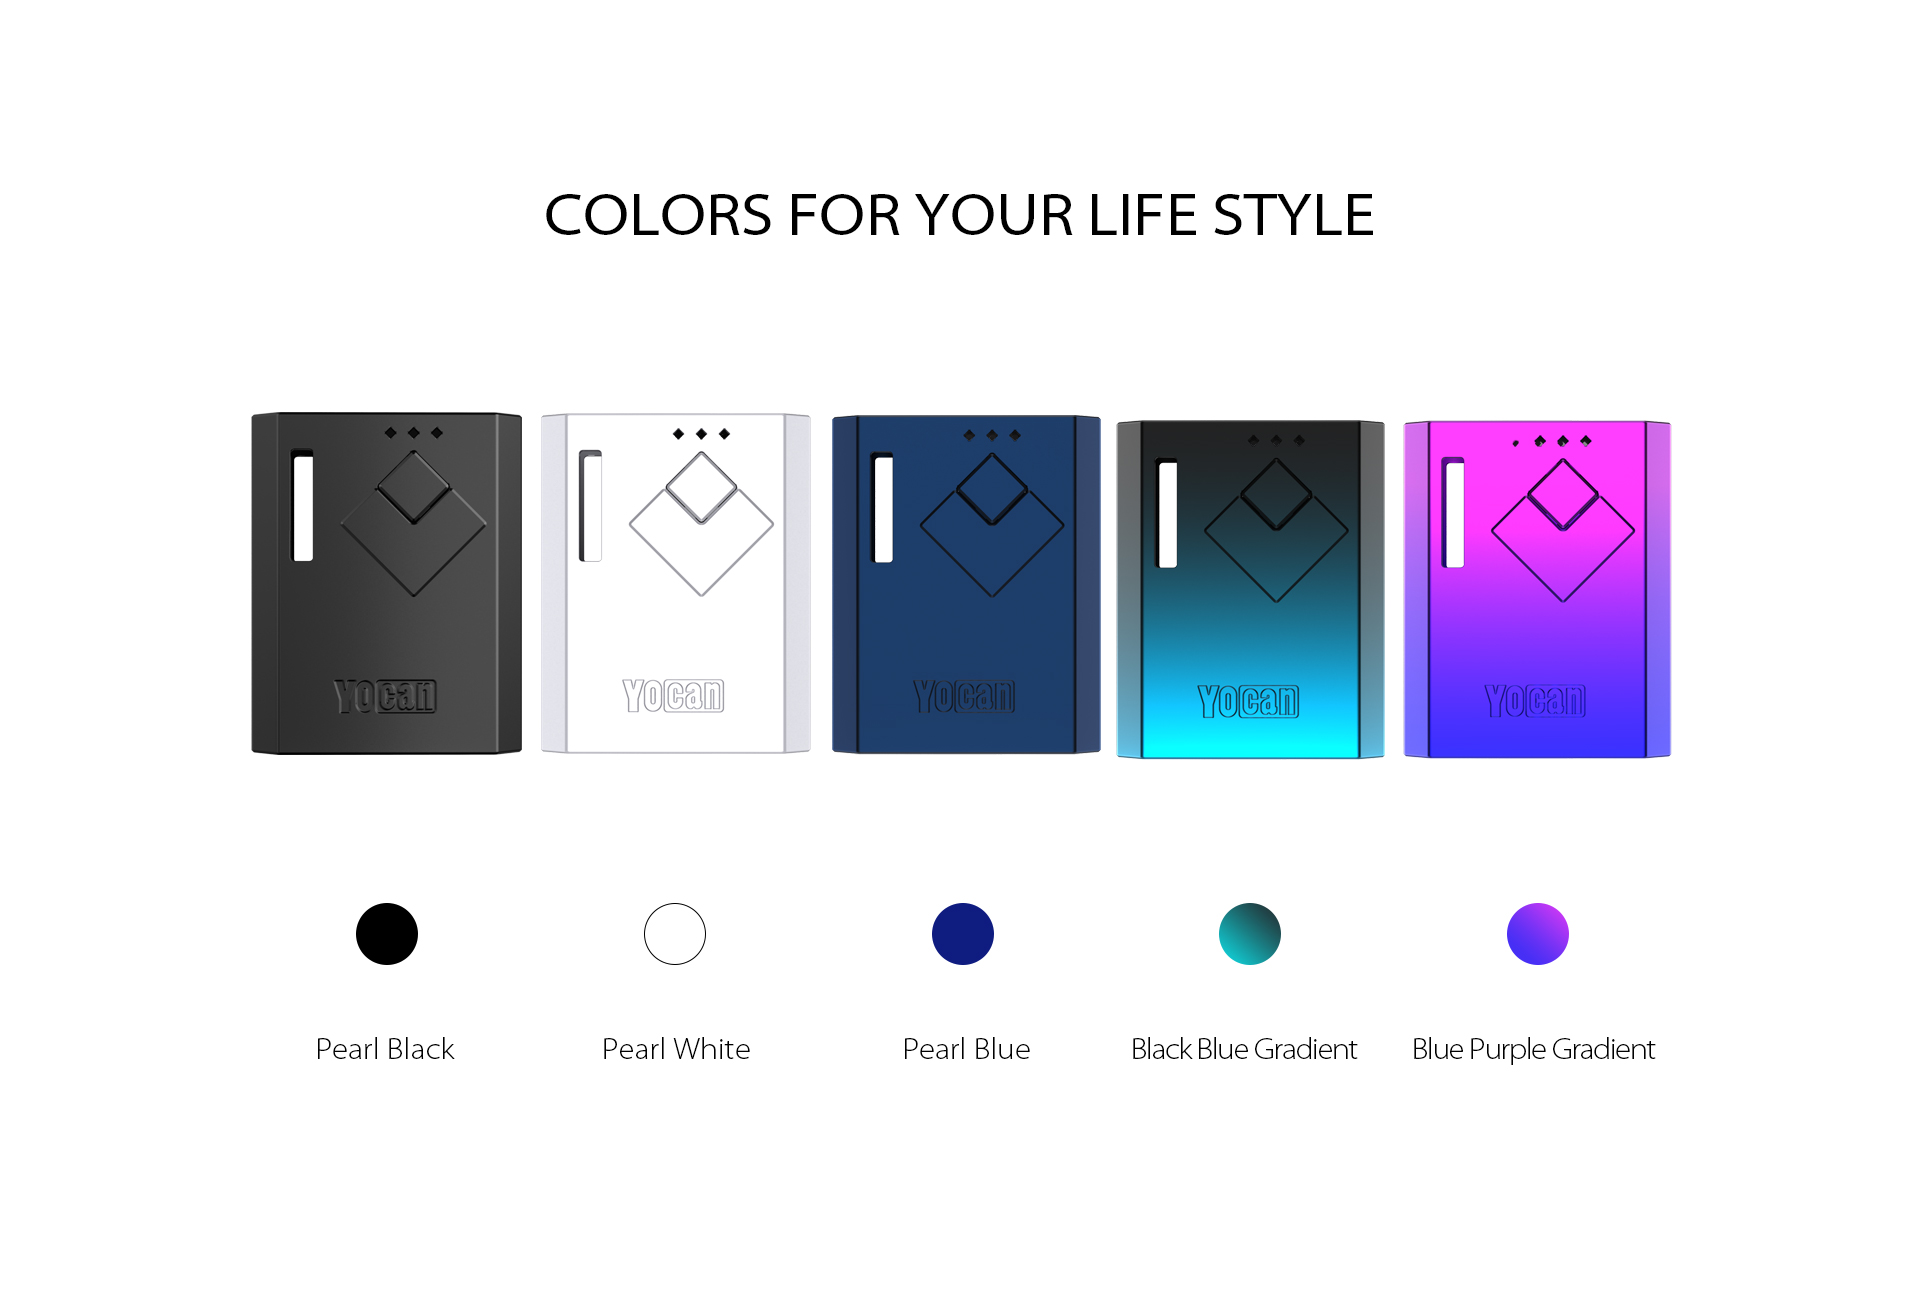 The Yocan Wit Box Mod Battery come with 5 colors.